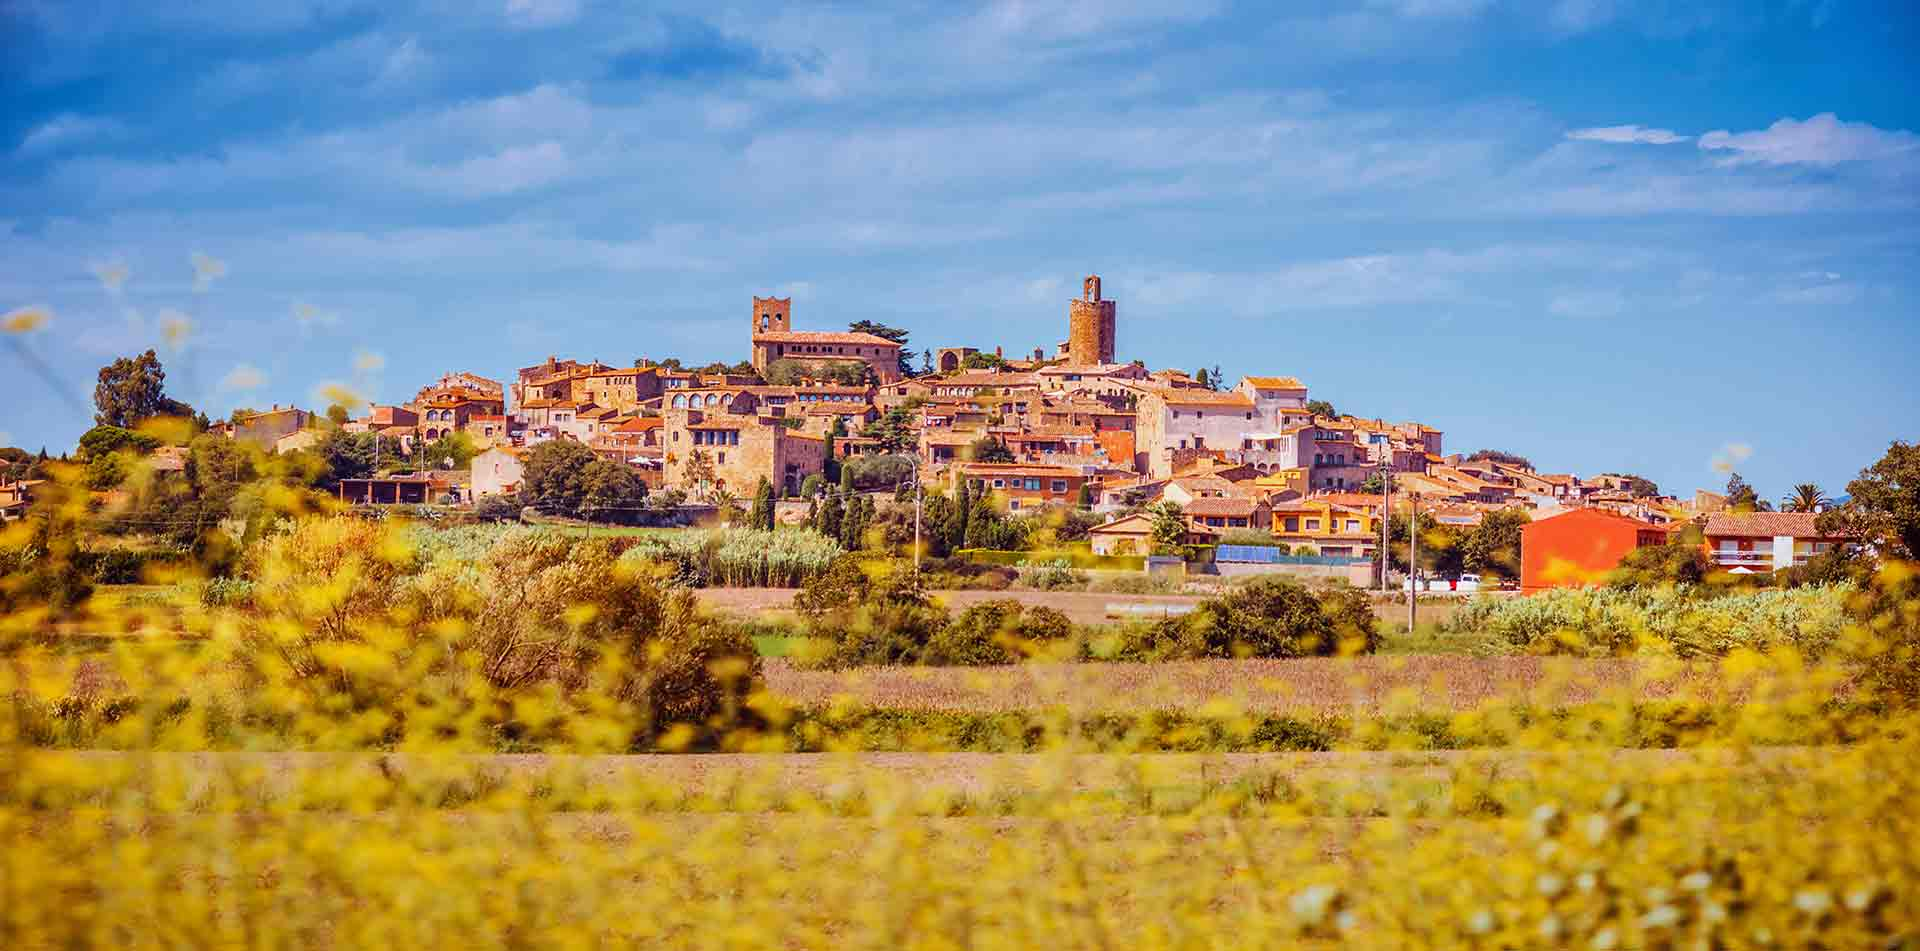 Europe Barcelona Spain Rural Area Scenic Landscape Travel Tour Countryside - luxury vacation destinations